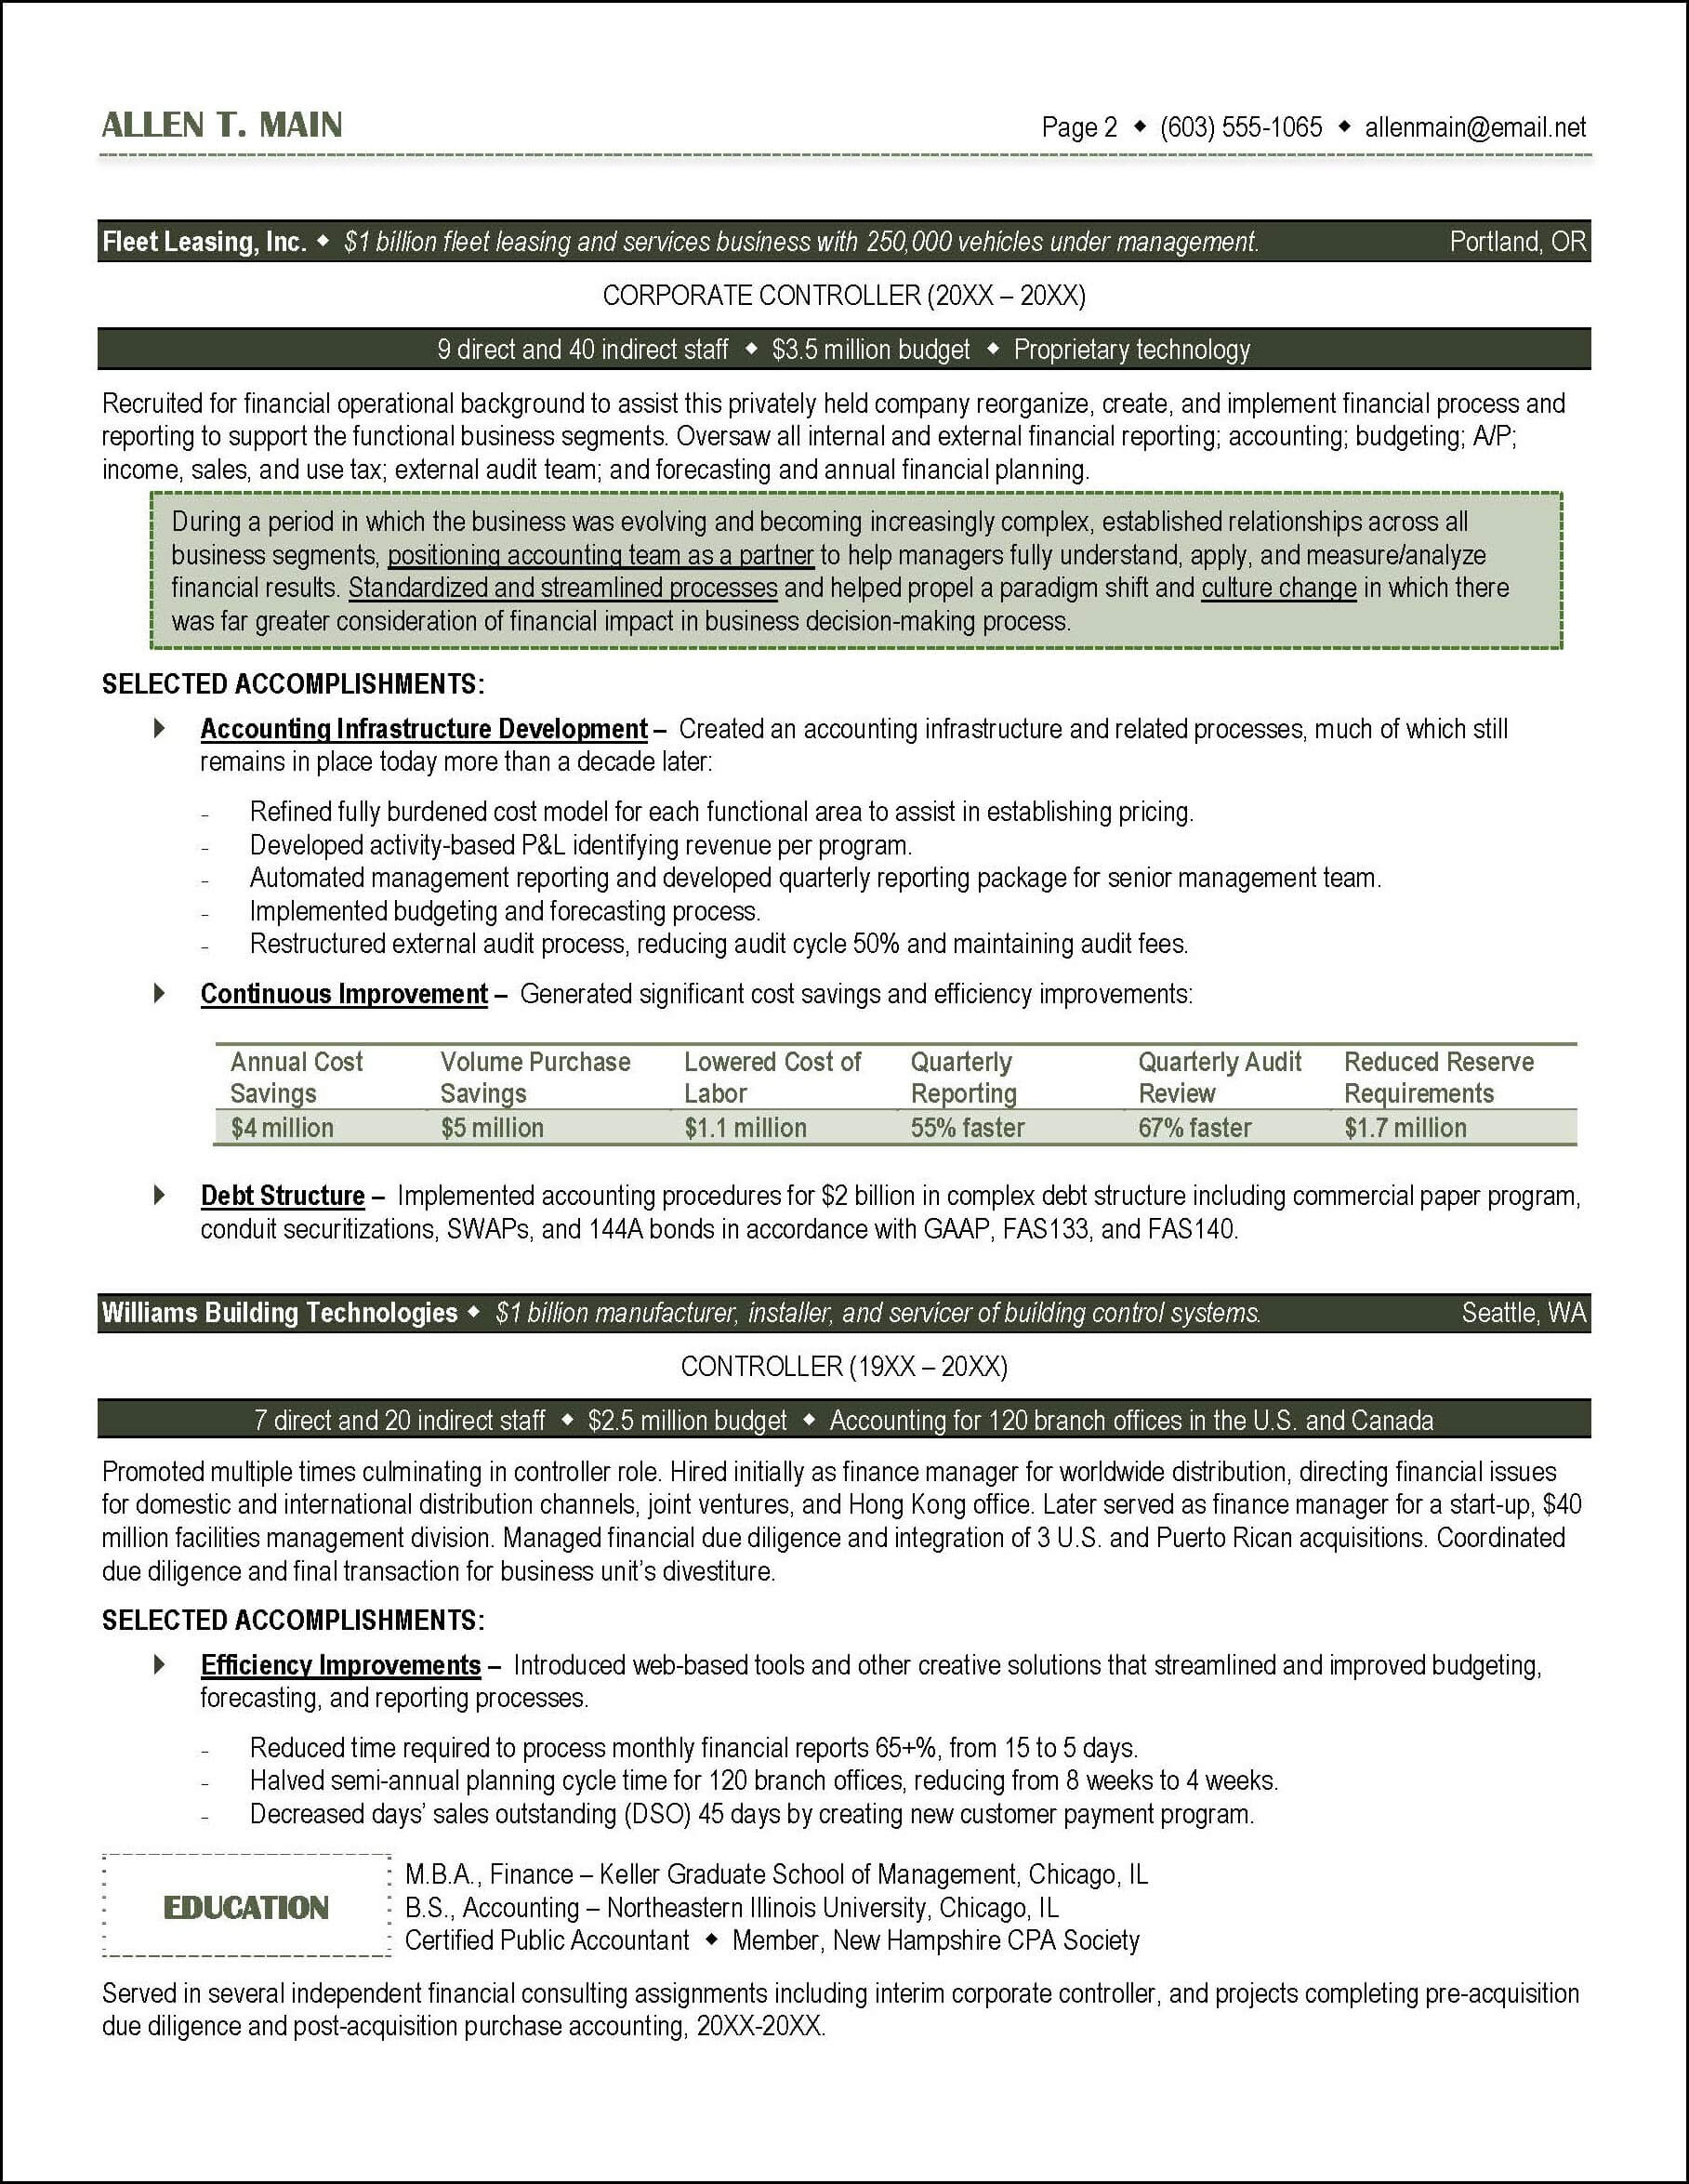 Accounting Resume Example Page 2  Resume For Accounting